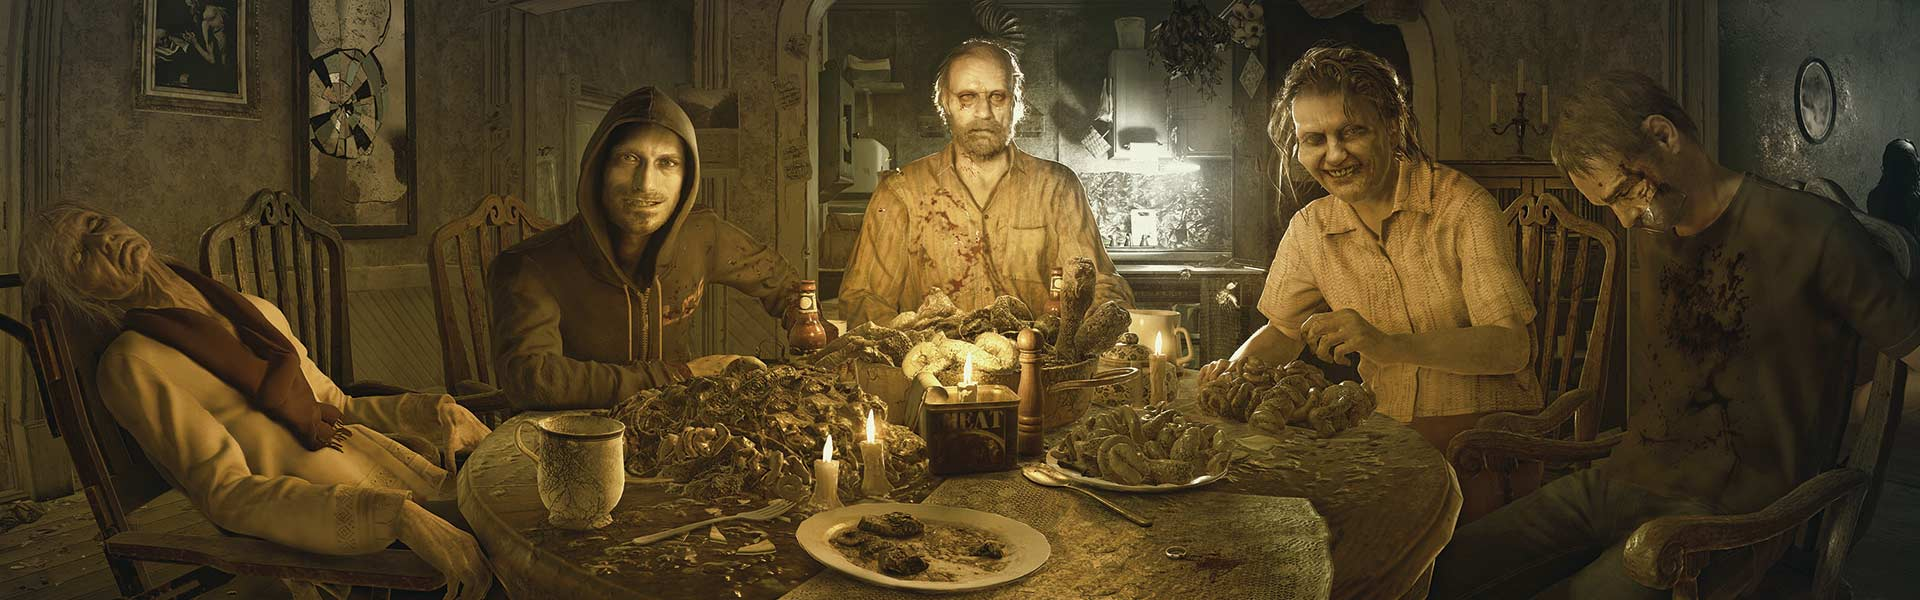 Resident Evil 7 Gets Huge News And Creepy New Trailer 29679481445 a1652cafaf o